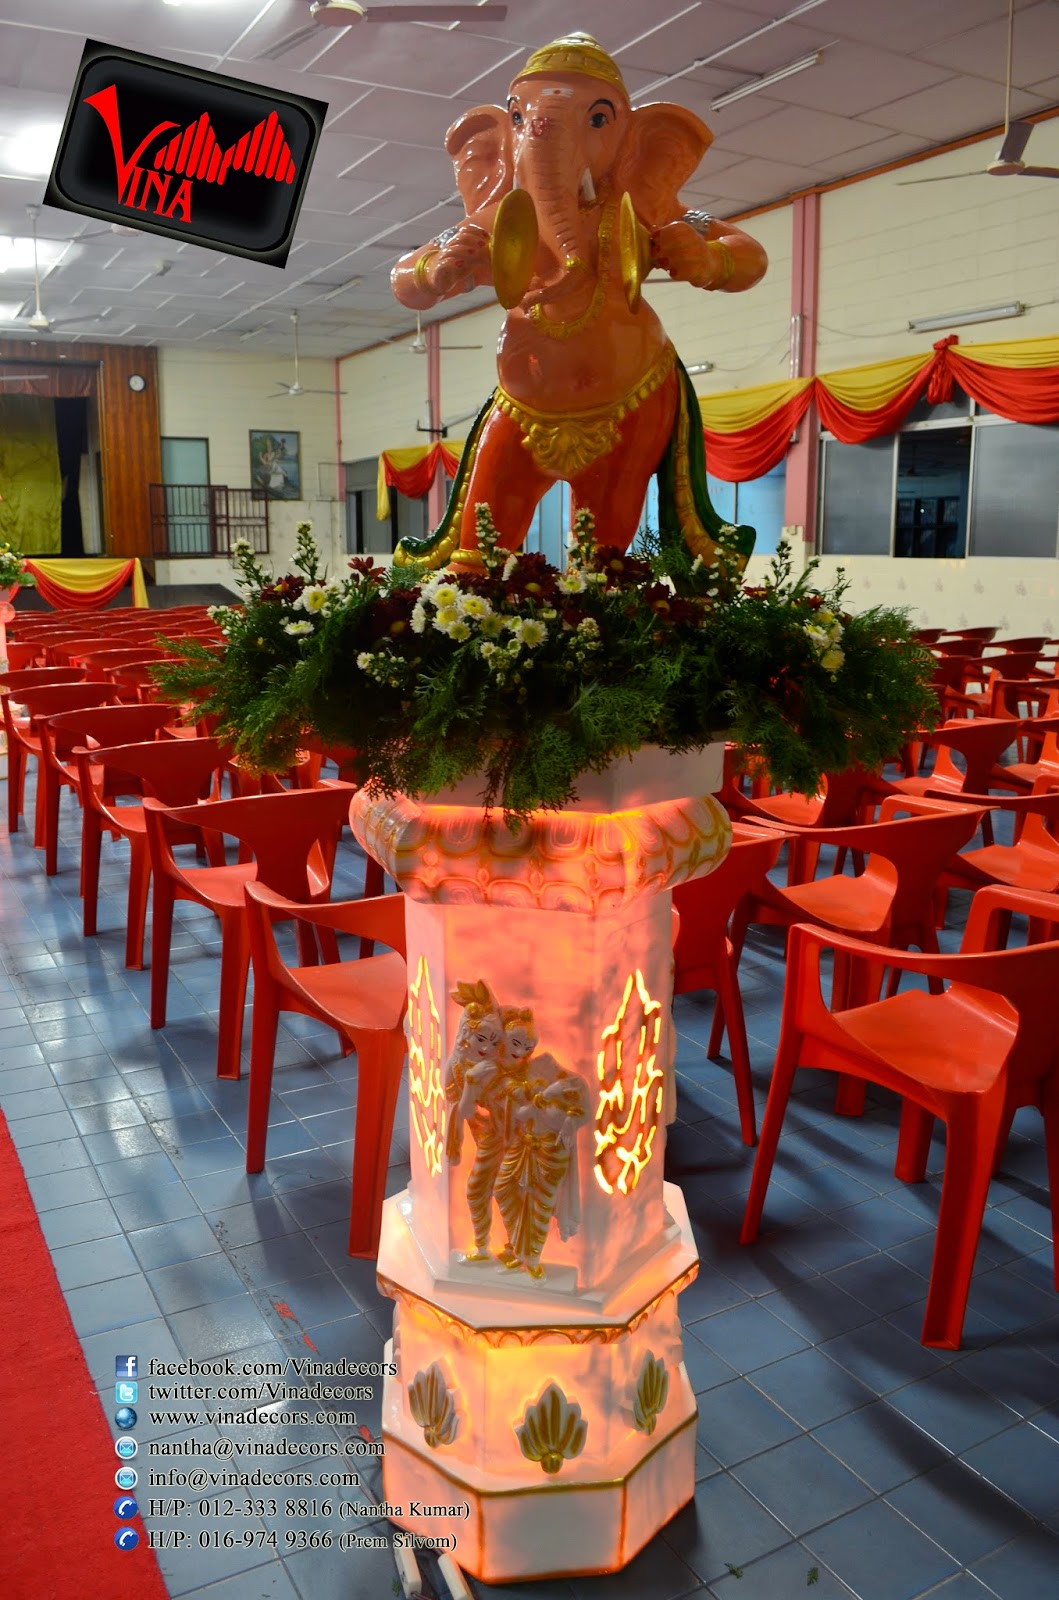 Morning Wedding in Sri Thandayuthapani Temple, Chettiar's Hall, No. 332, Jalan Ipoh, Sentul 51200 Kuala Lumpur which took place on 9th April 2014 (Entrance Kolam Setting with twin ganesha statue, 10 different pillar with musical ganesha statue and fresh flowers, ganesha manavarai seting with fresh flowers and Main table setting) by Vina Canopy & Decor